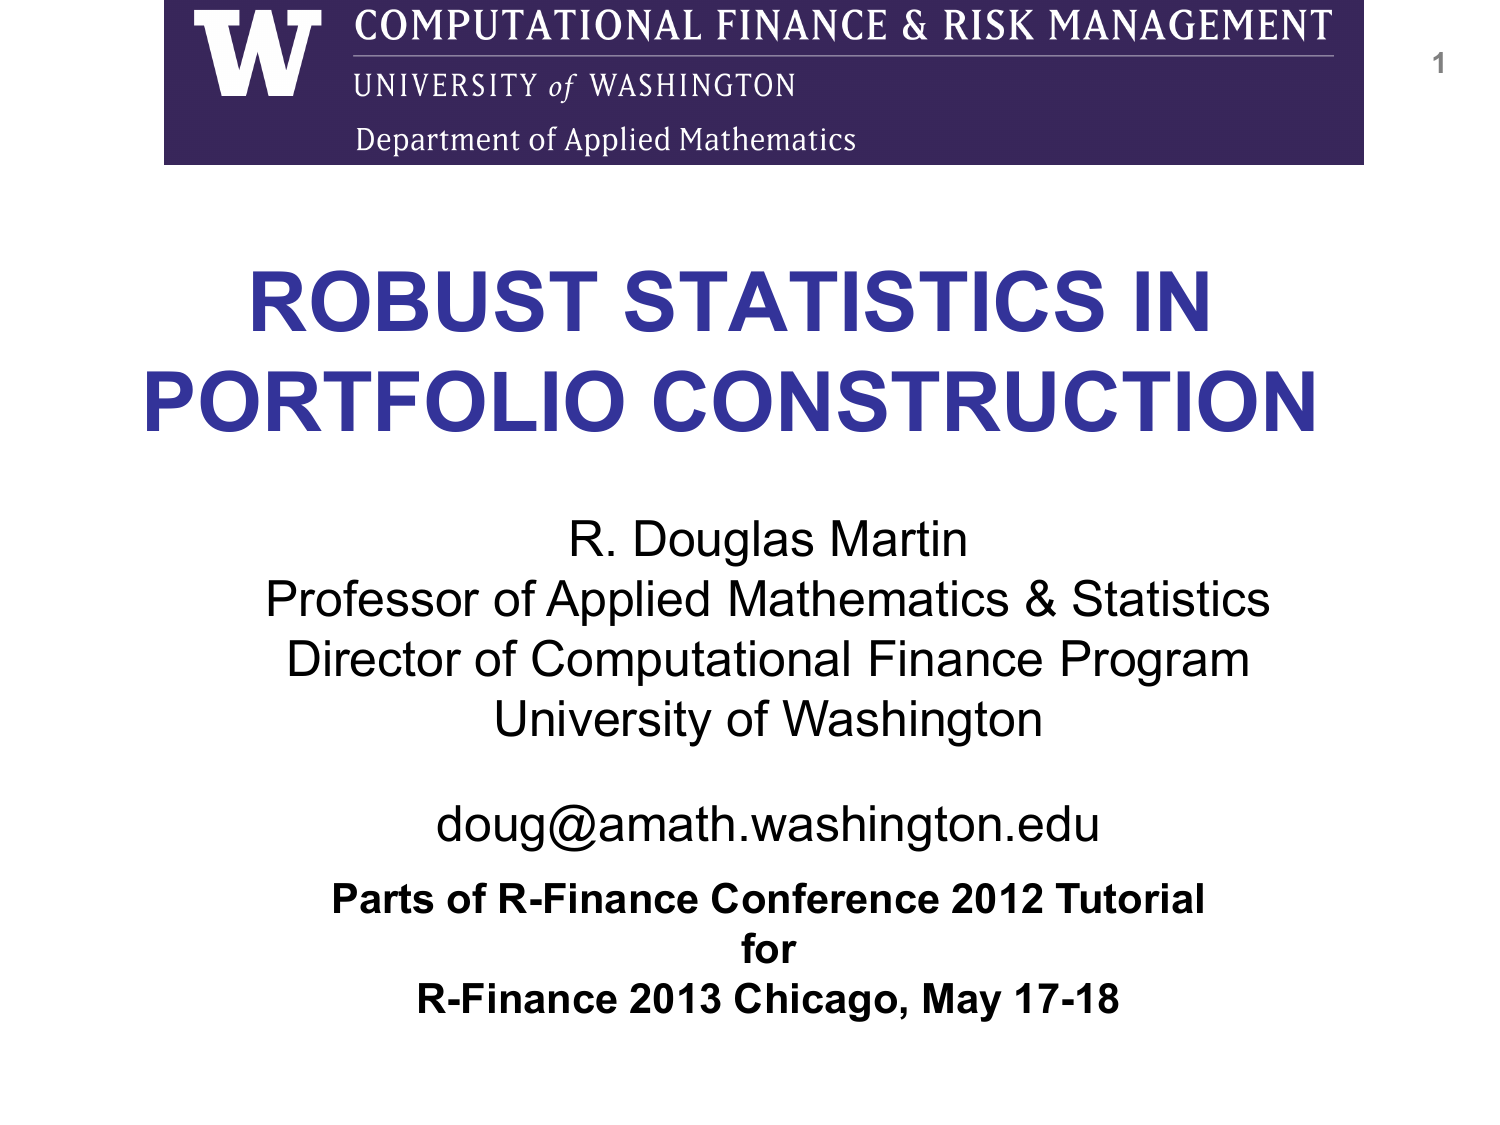 robust stats finance R-Finance 2012 parts for